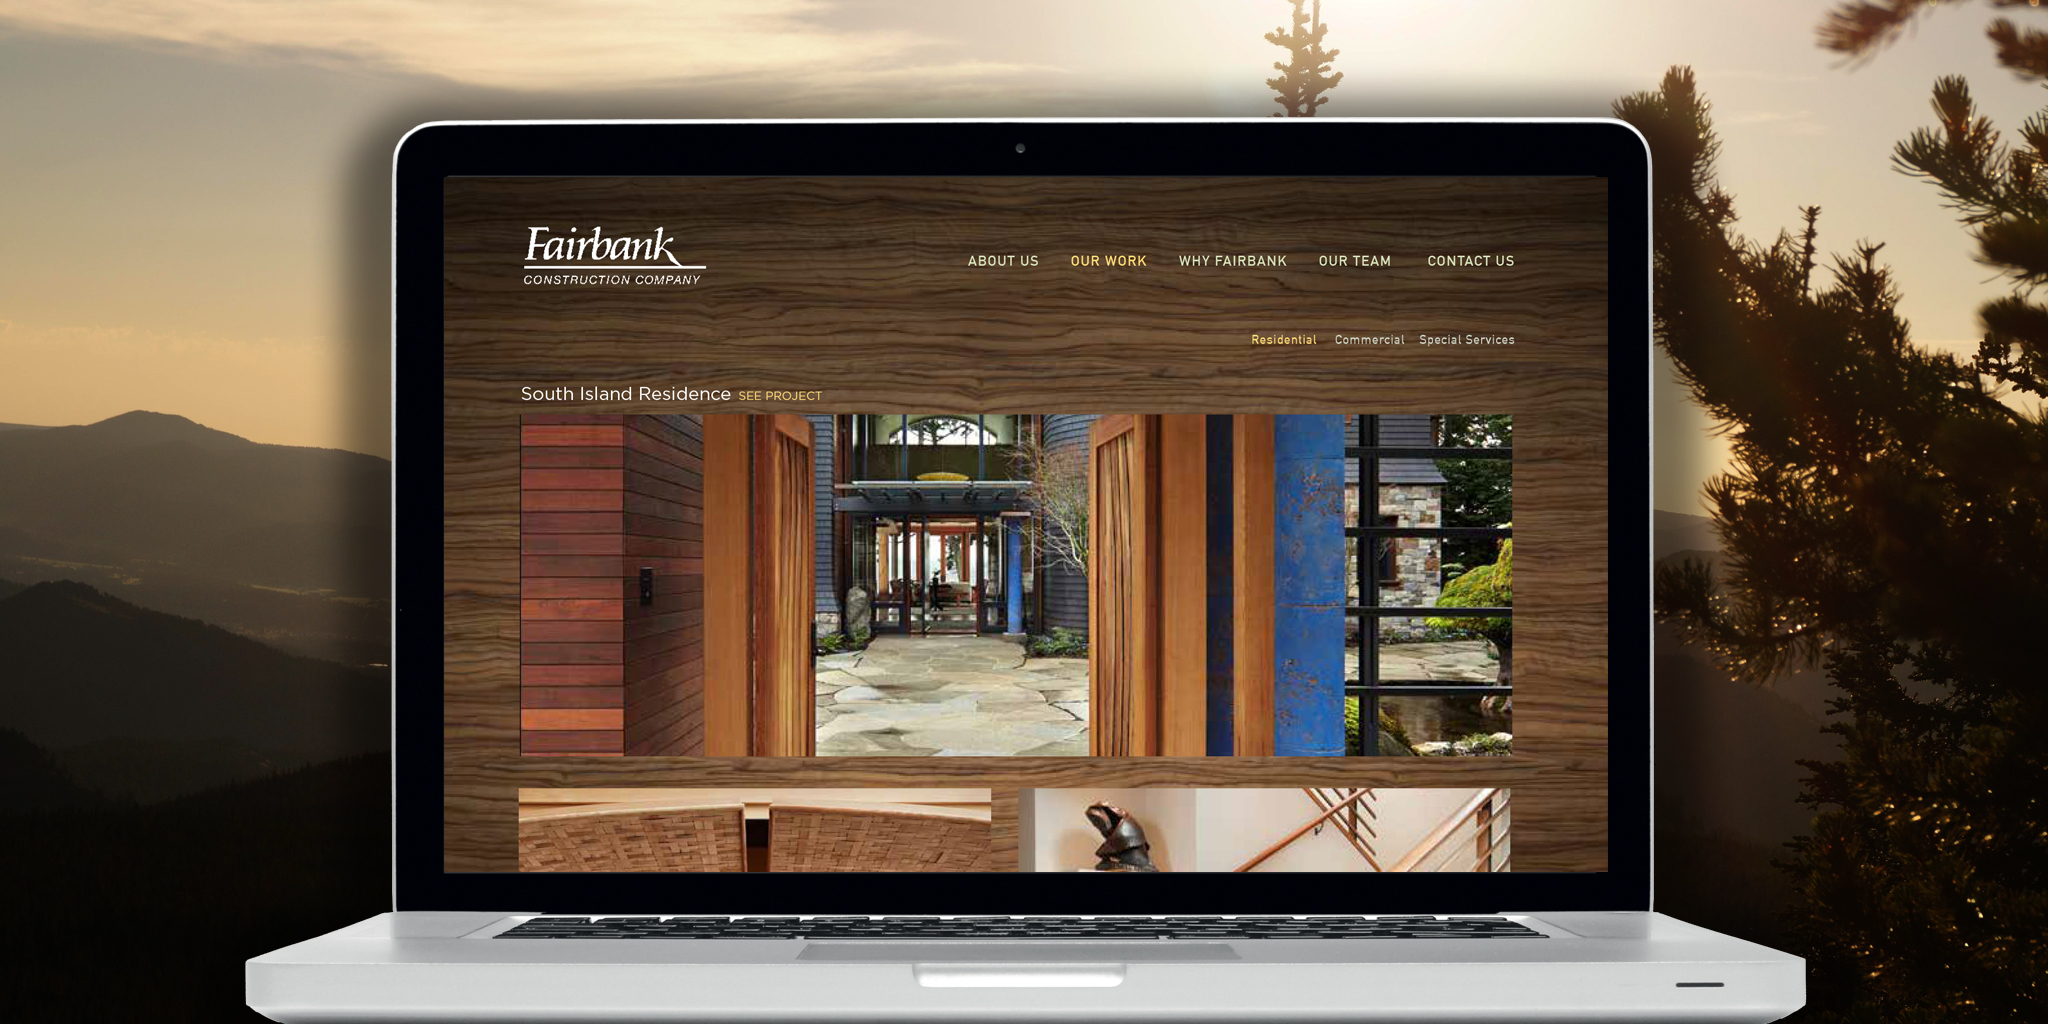 WEBSITE  Fairbank Construction  As the construction leader and standard in the Northwest, this premium builder needed a website that showcased their craft while handling a robust amount of portfolio projects. We employed classic elegance with simplicity in the overall layout and UI to reflect the group's down to earth approach to building. We leveraged natural materials and landscapes to reflect the soulful connection the client had with customers and the region.